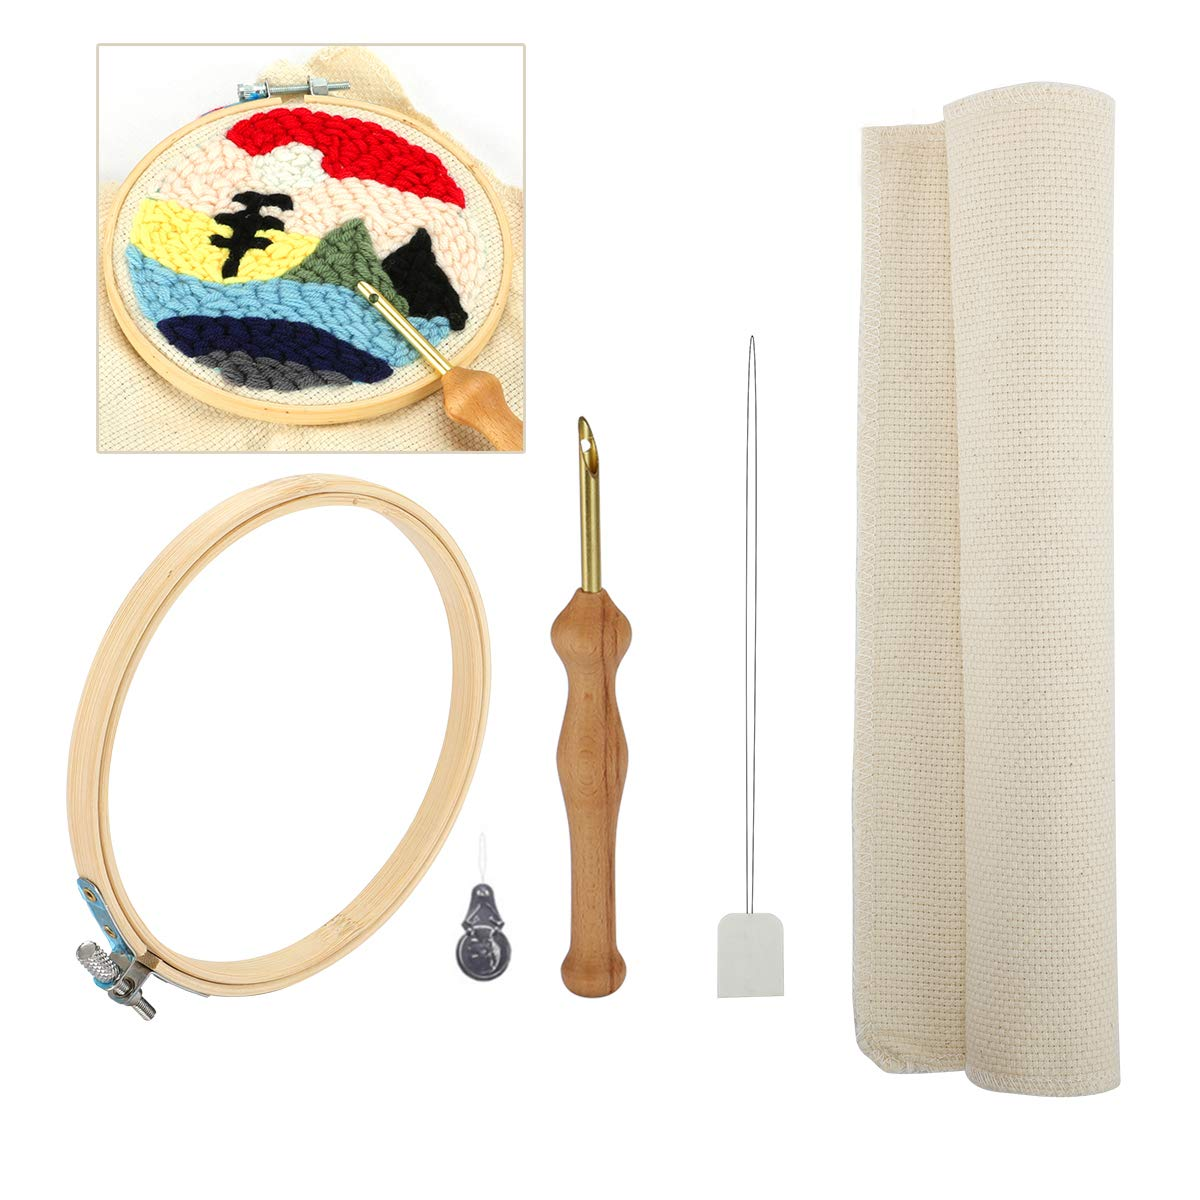 Set 1 Looen Wooden Handle Embroidery Pen Punch Needle Set Craft Needlework Stitching Kit Include Embroidery Hoop Fabric Table Cloth Felting Threader